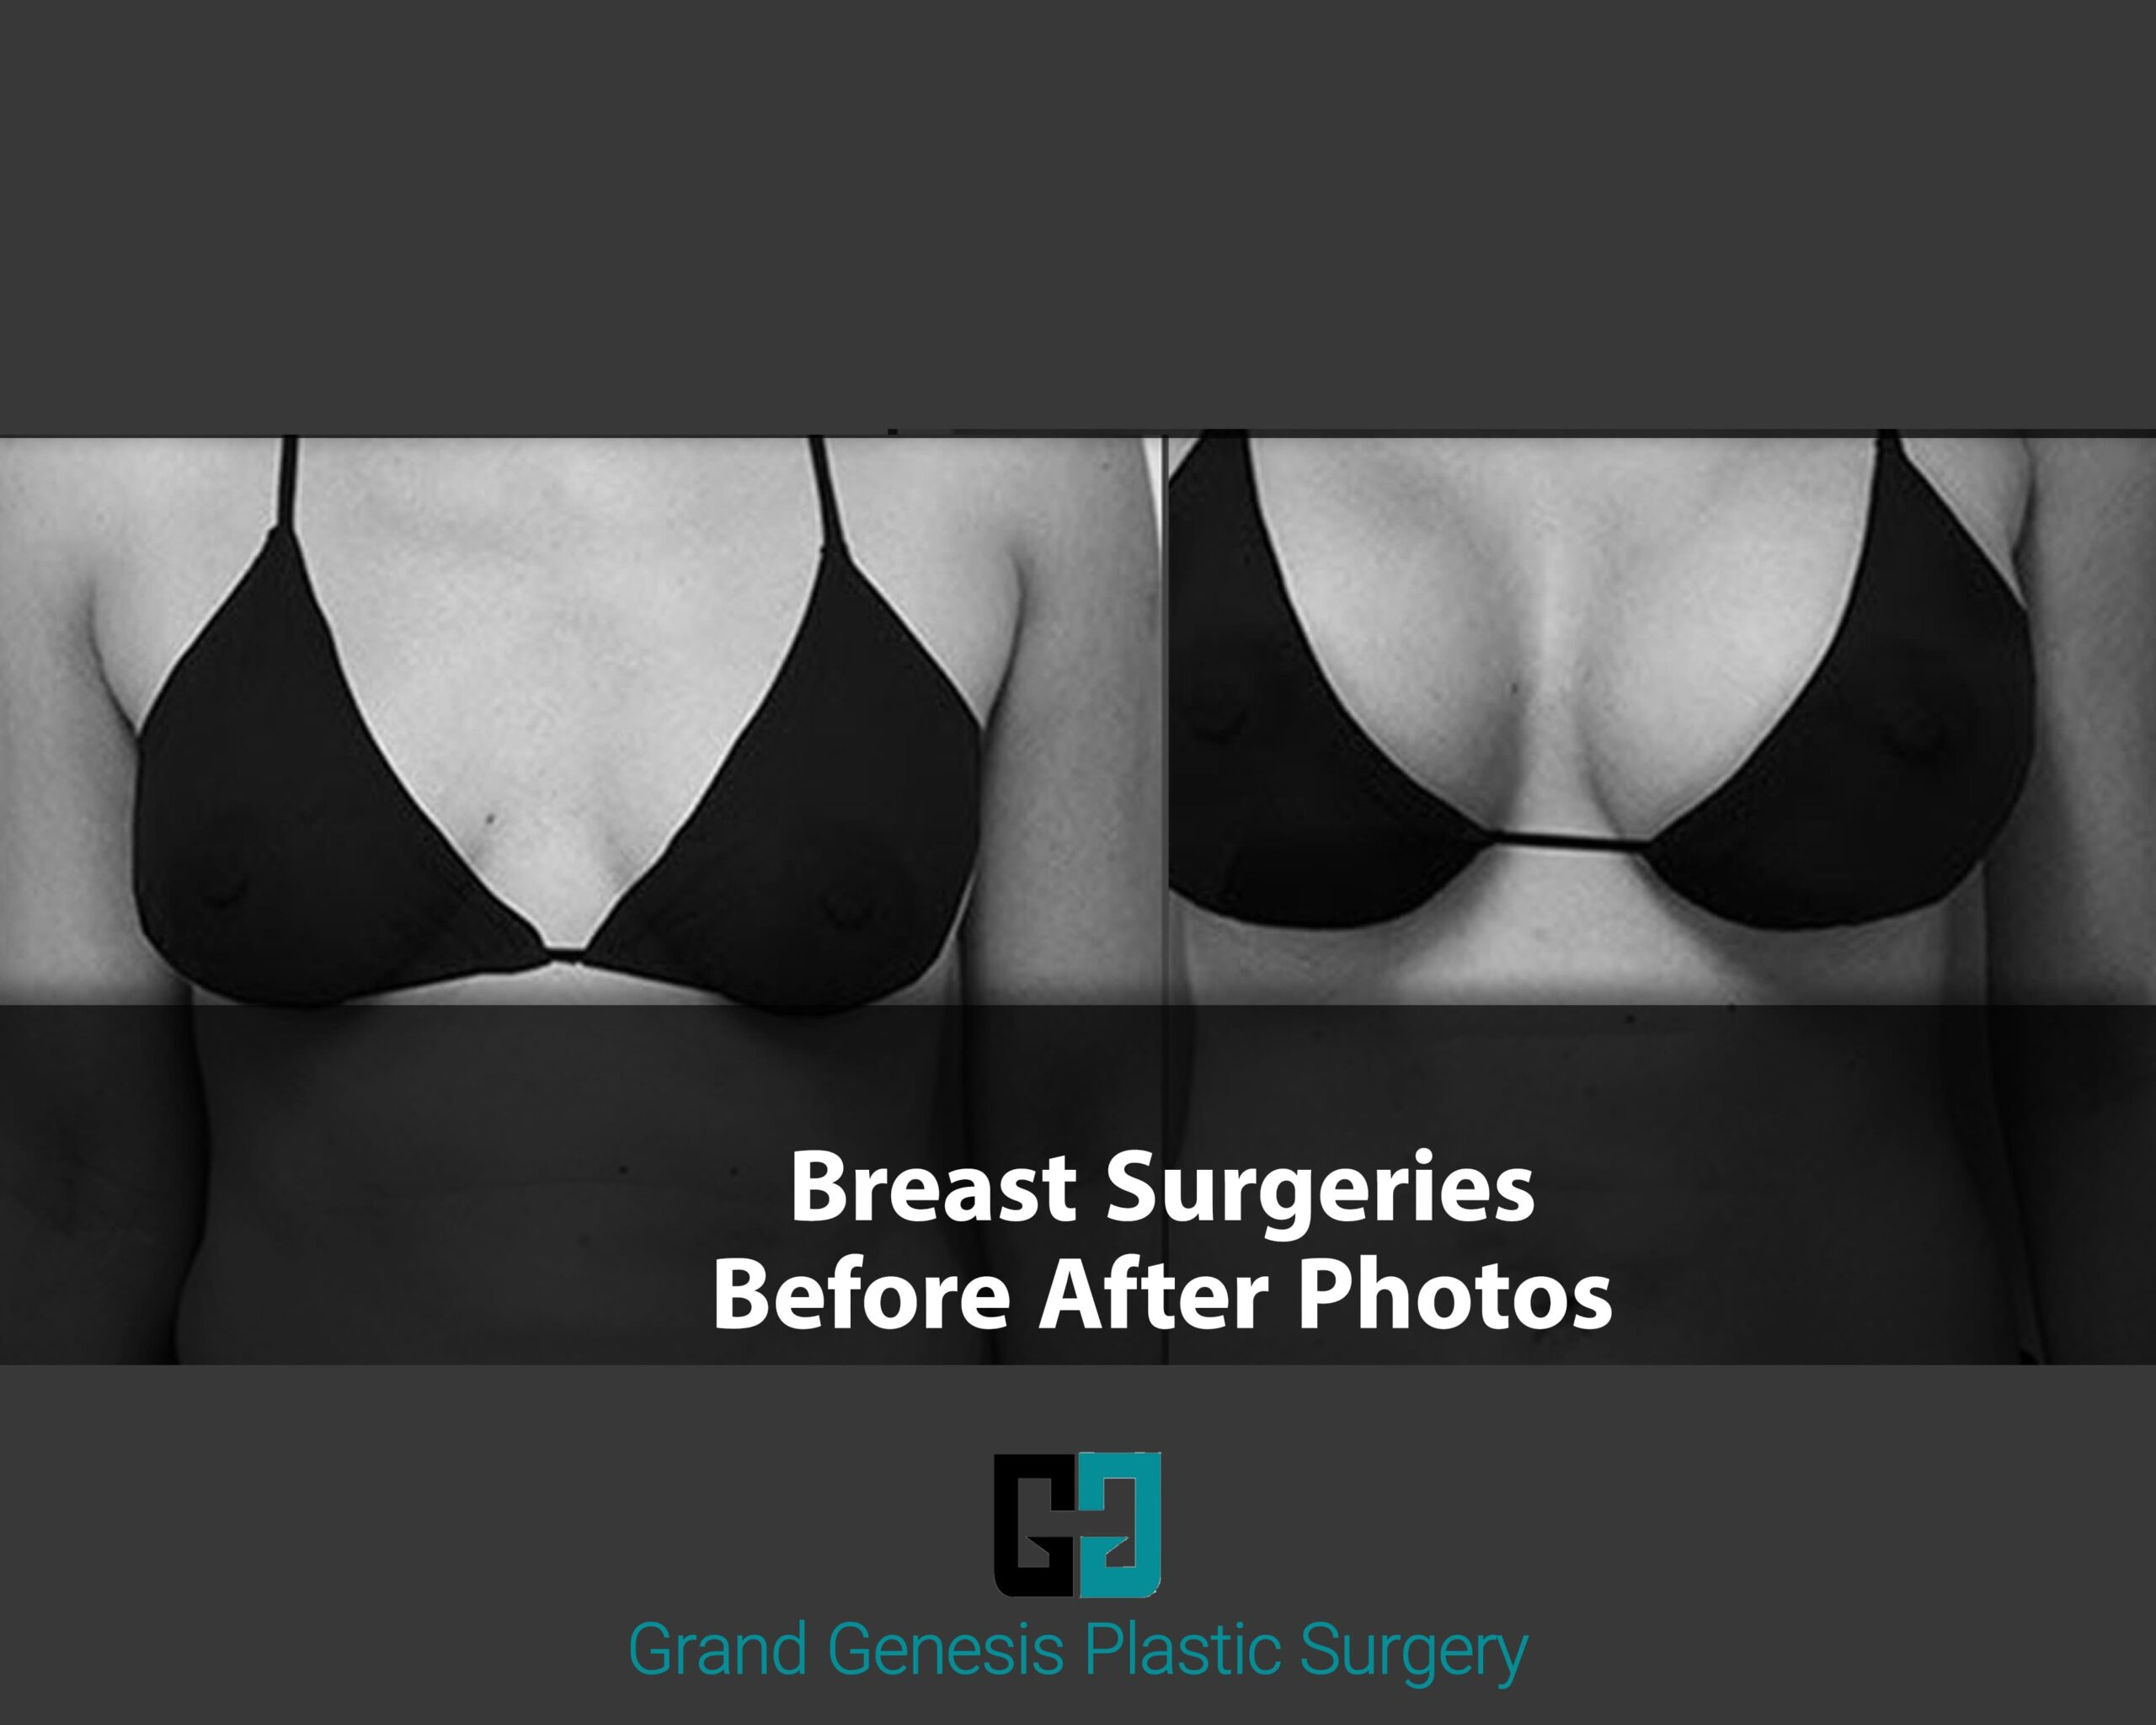 BREAST SURGERY BEFORE AFTER